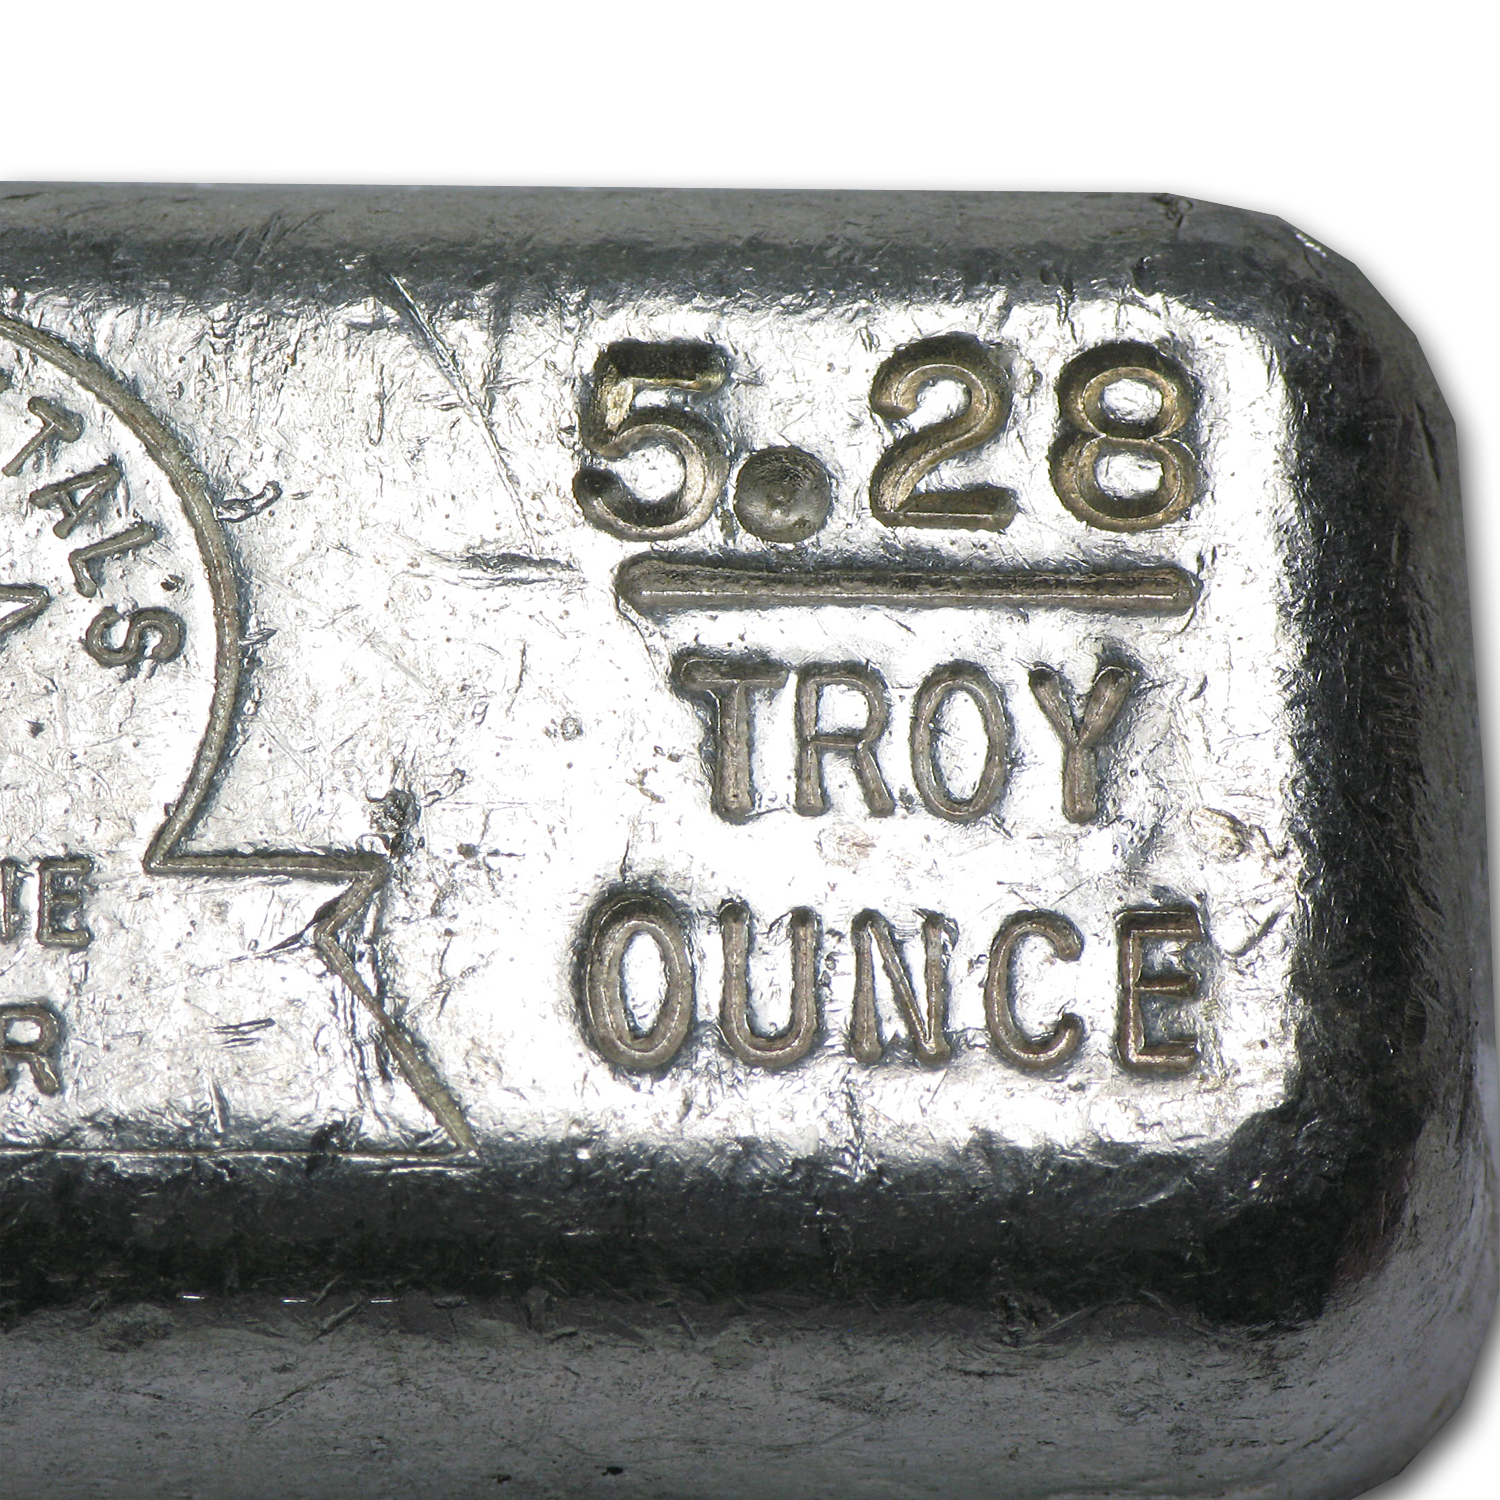 5.28 oz Silver Bar - Star Metals